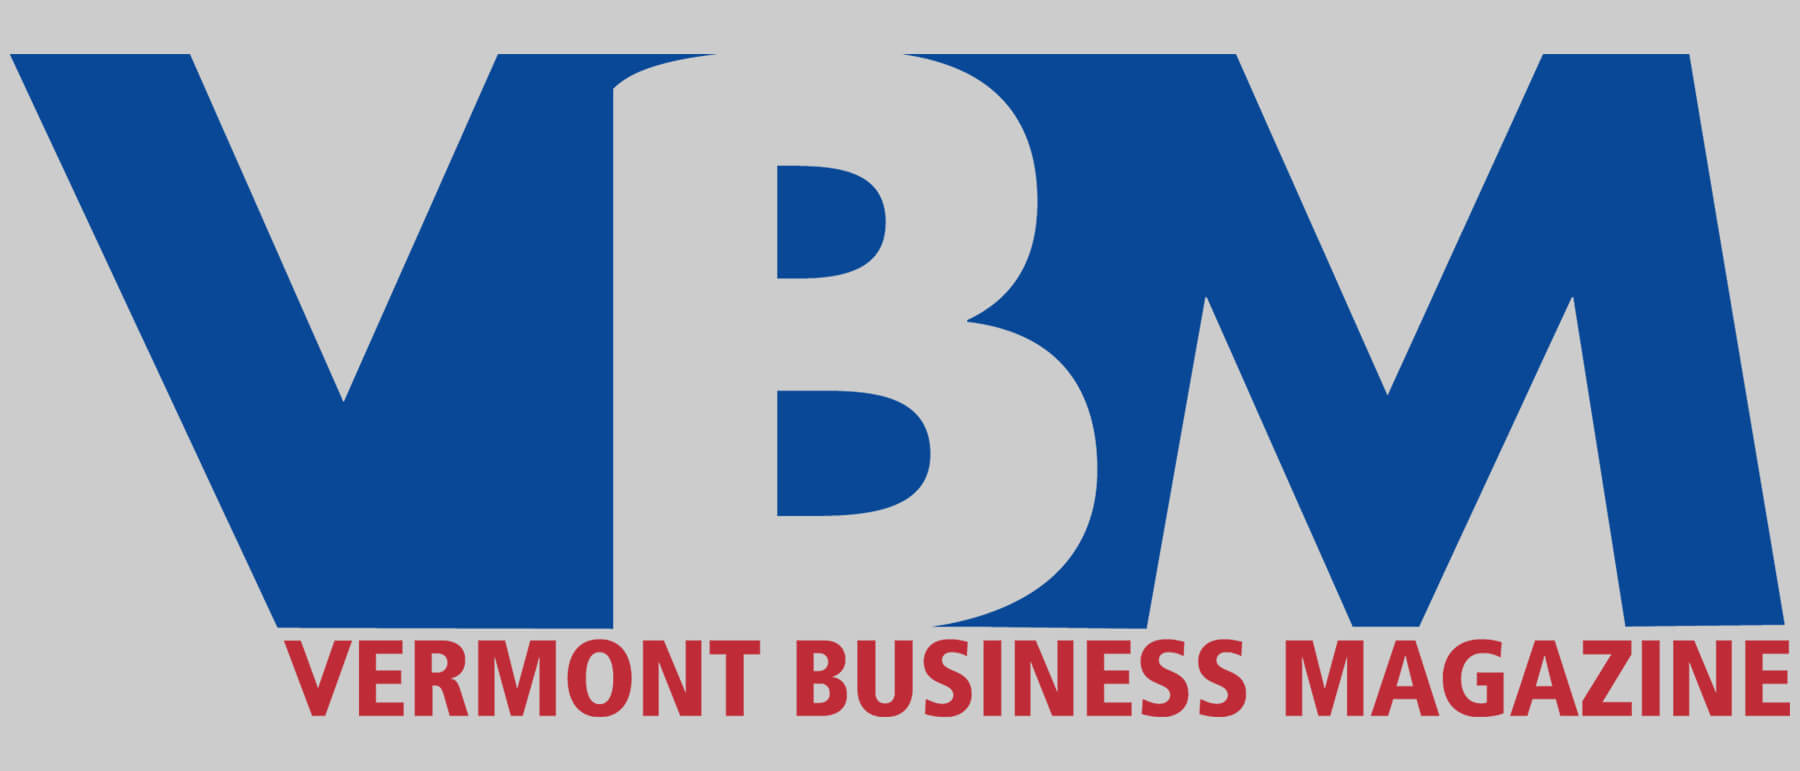 Vermont Business Magazine Features Power Box Release